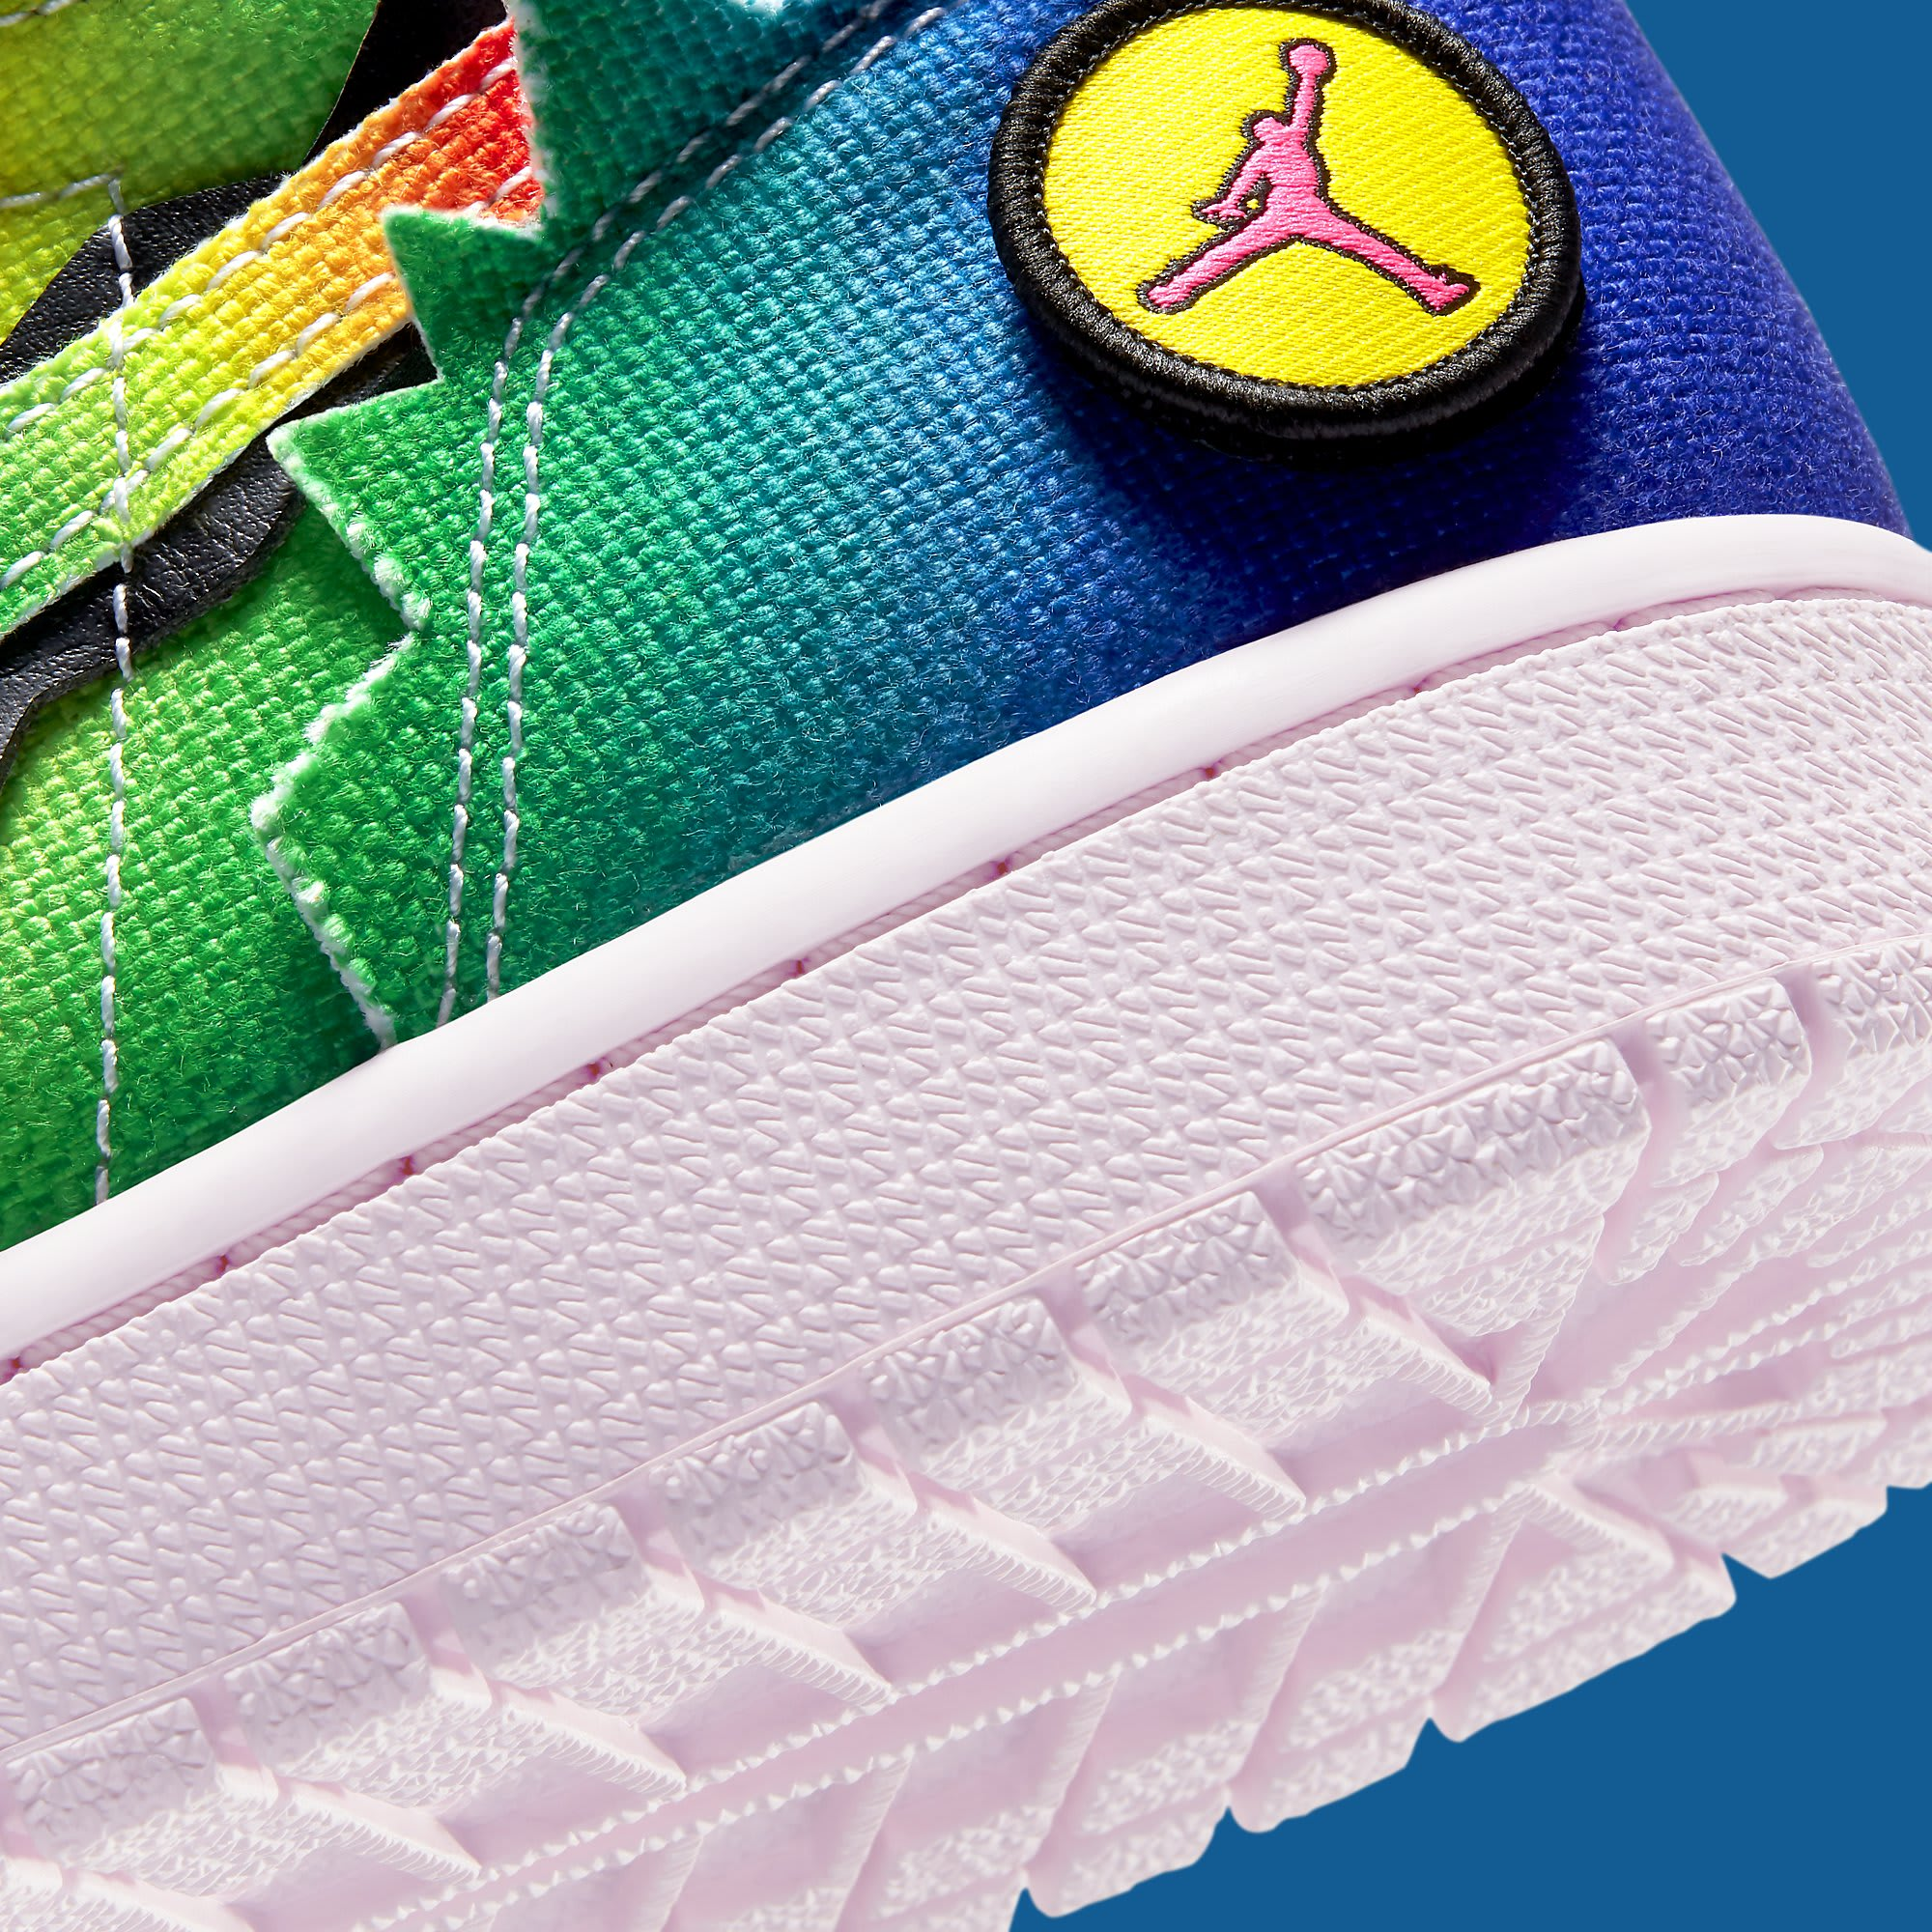 J Balvin x Air Jordan 1 High DC3481-900 Heel